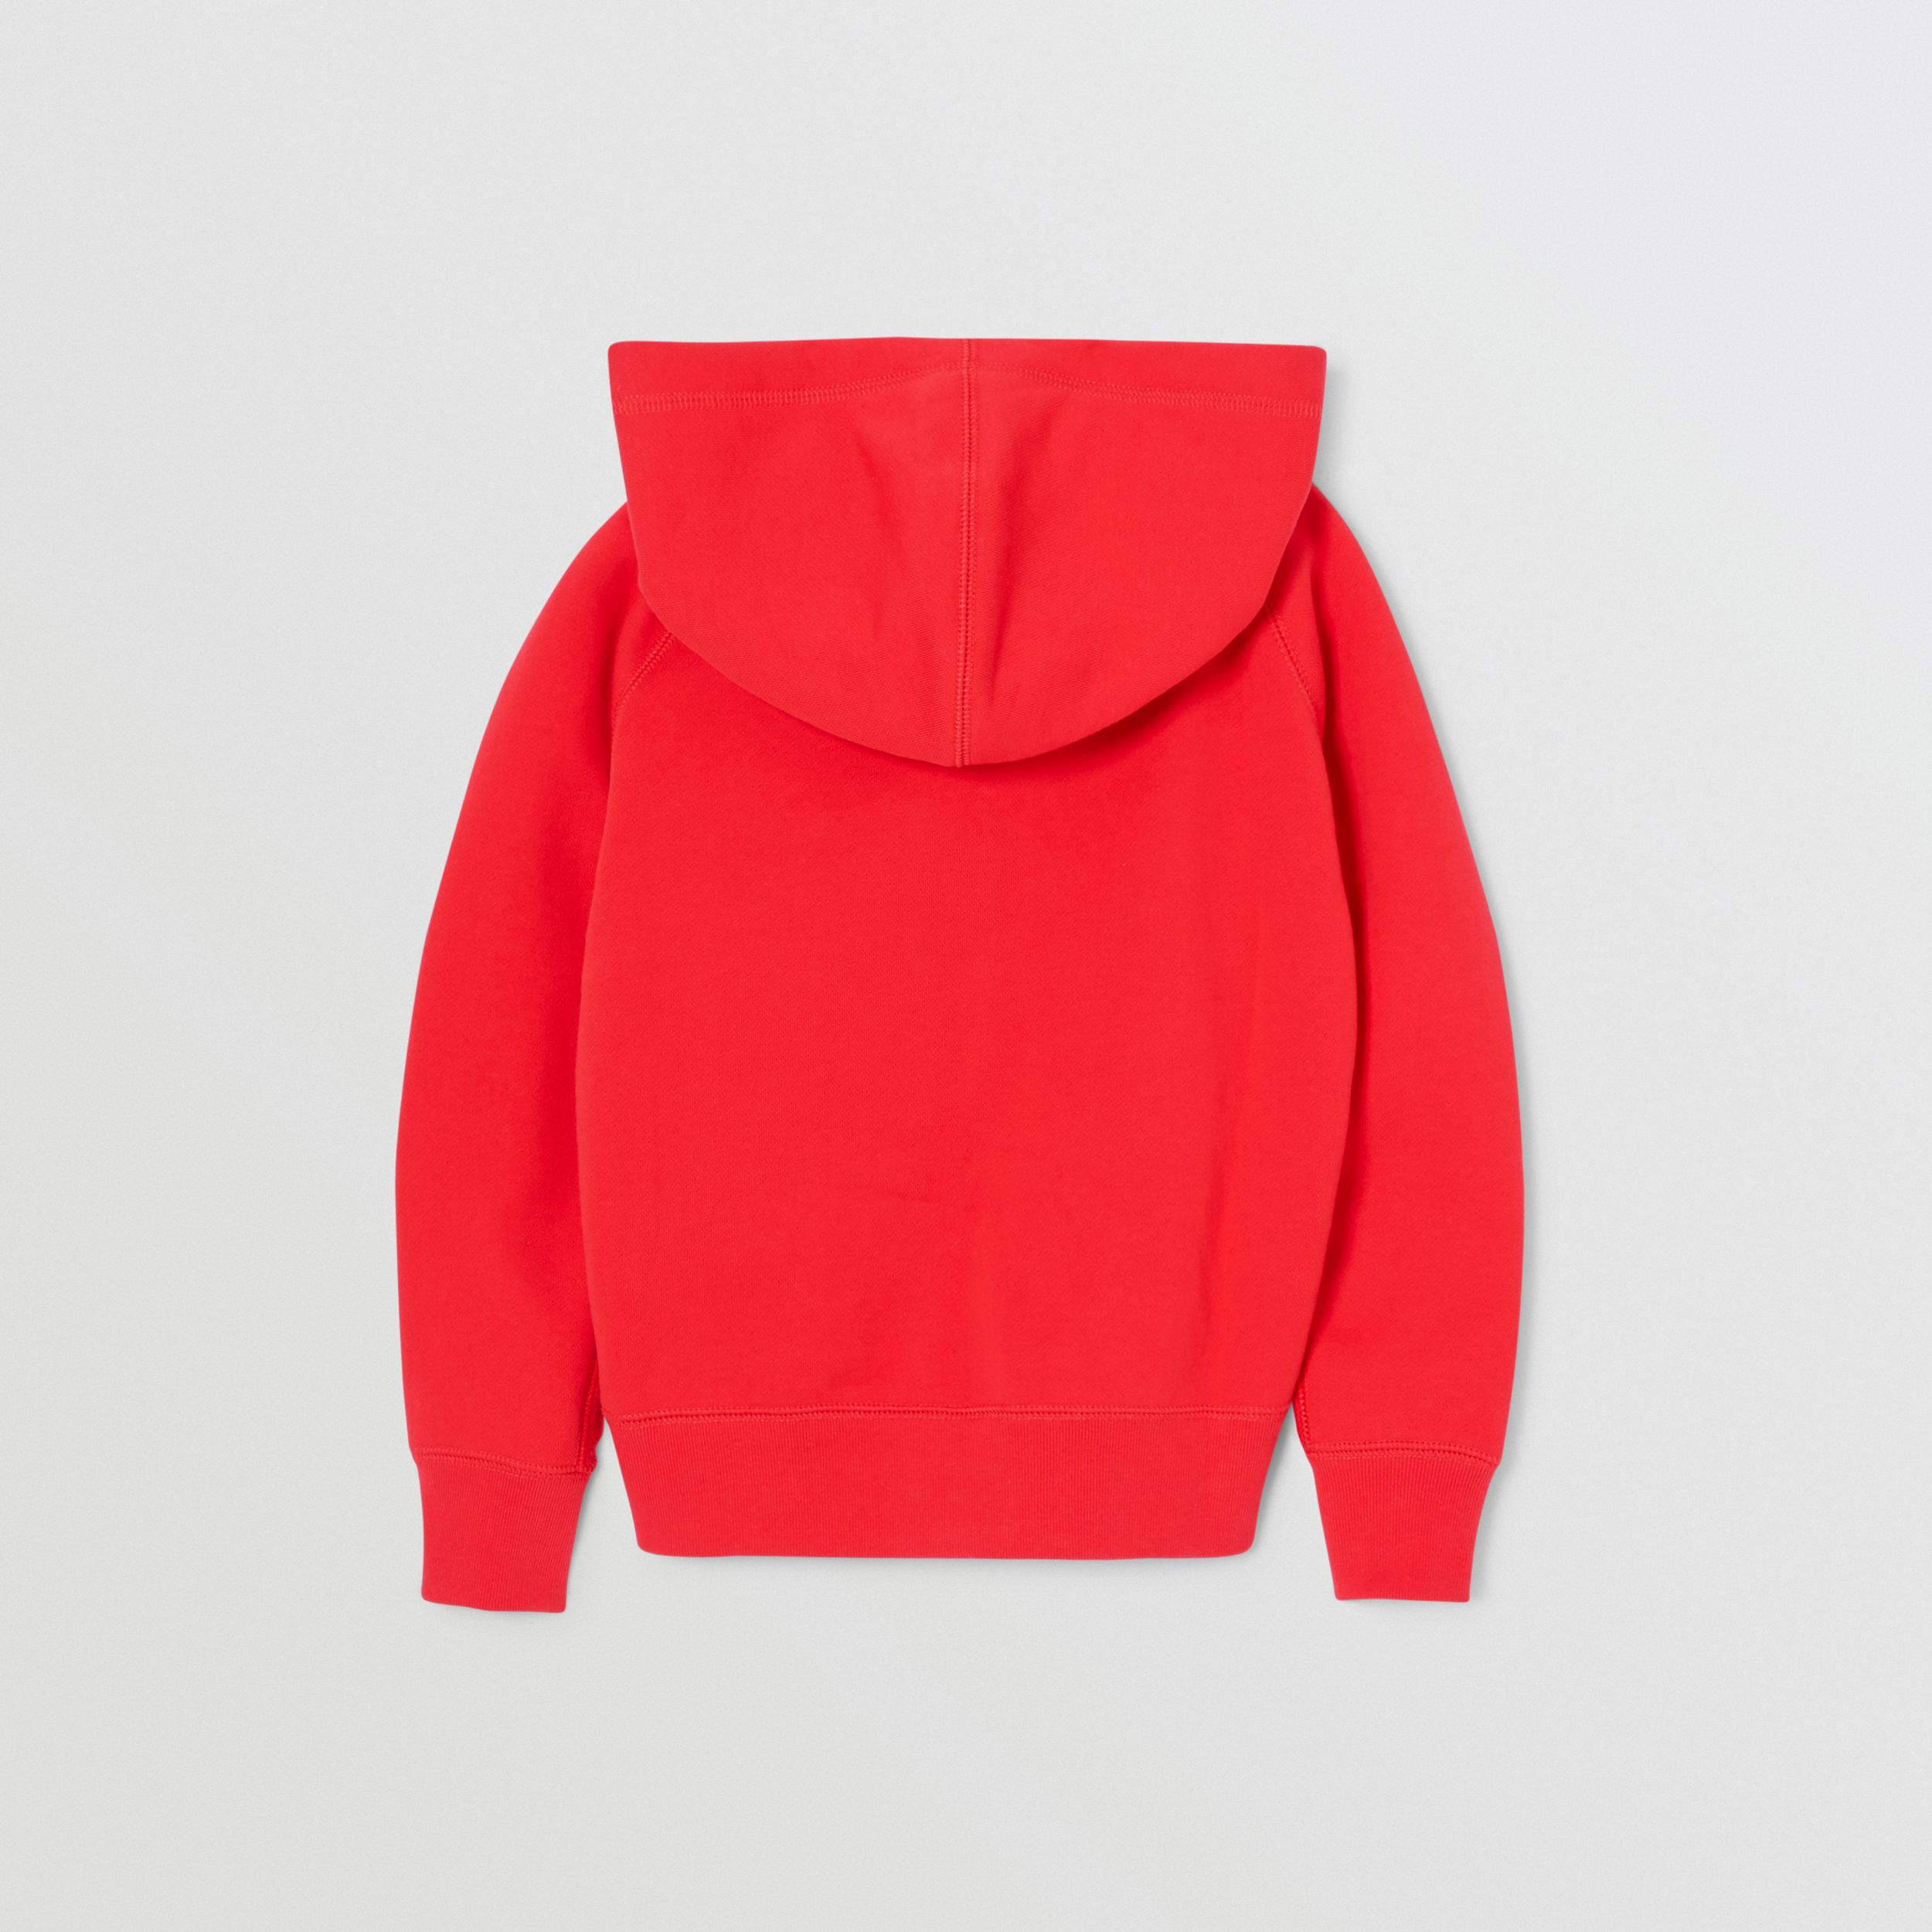 Contrast Logo Graphic Cotton Hooded Top in Bright Red | Burberry Hong Kong S.A.R. - 4